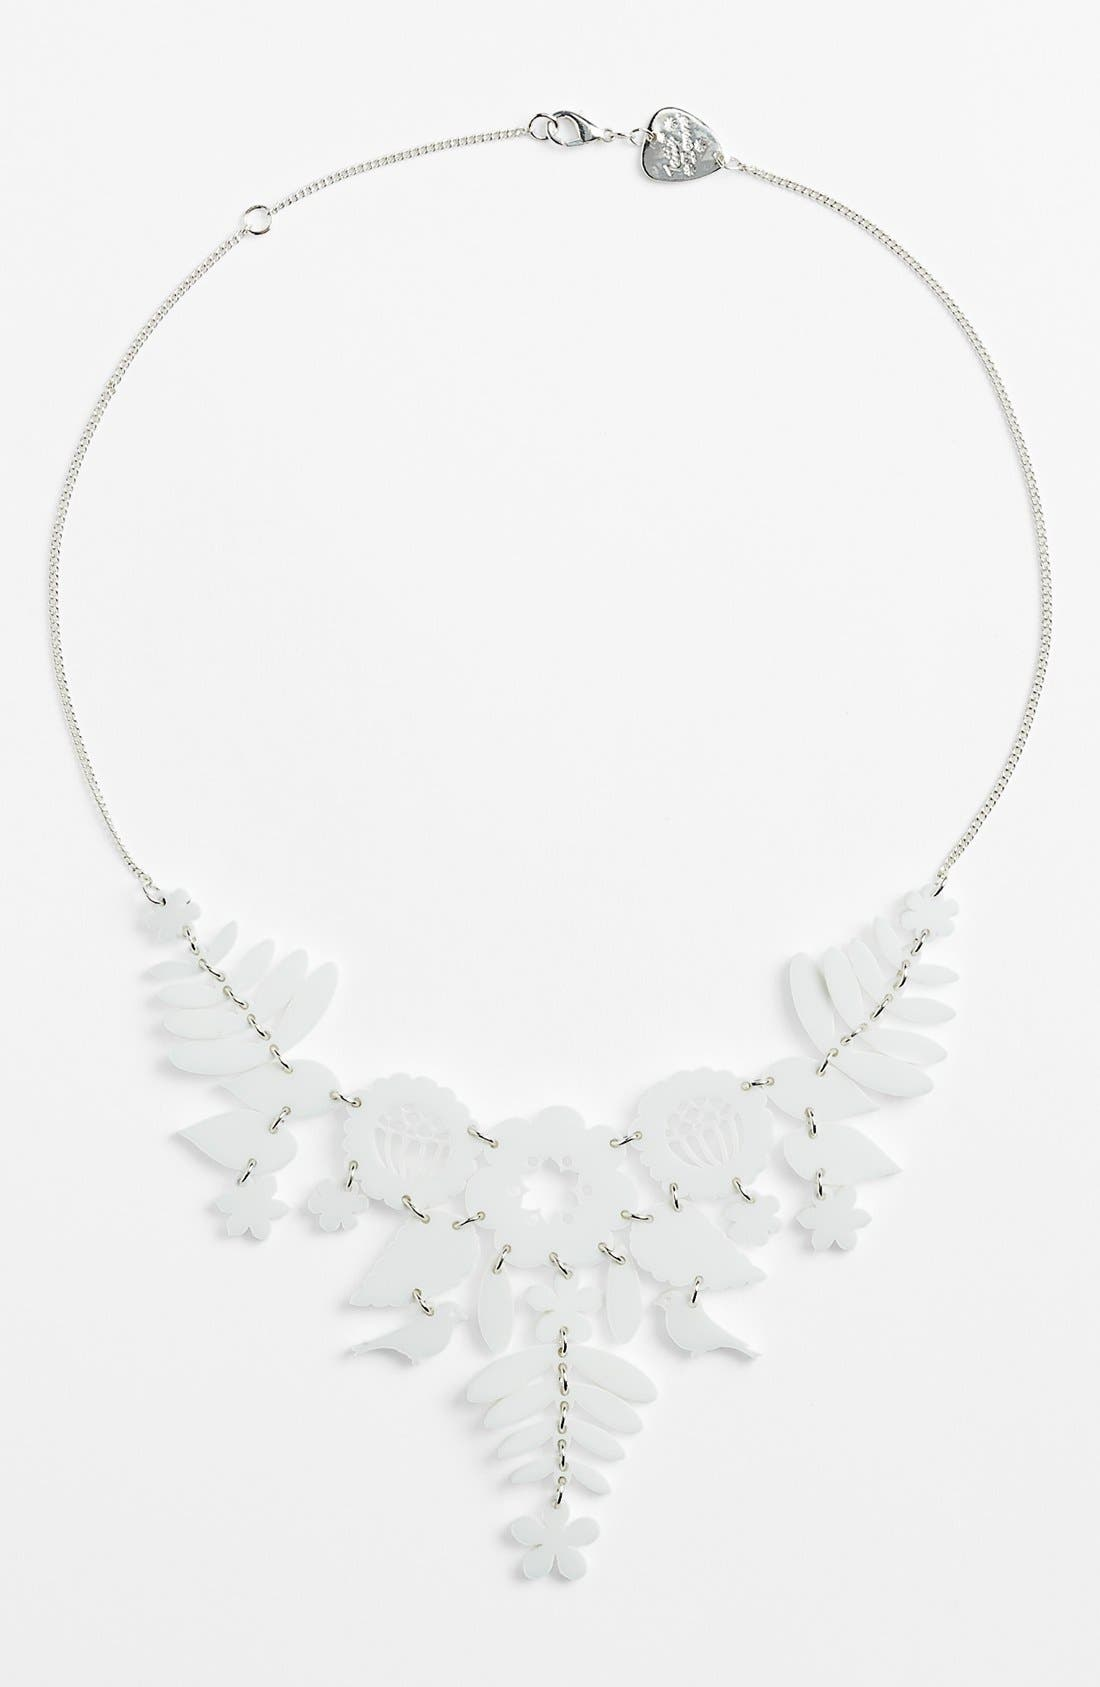 Main Image - Tatty Devine 'Mexican Embroidery' Statement Necklace